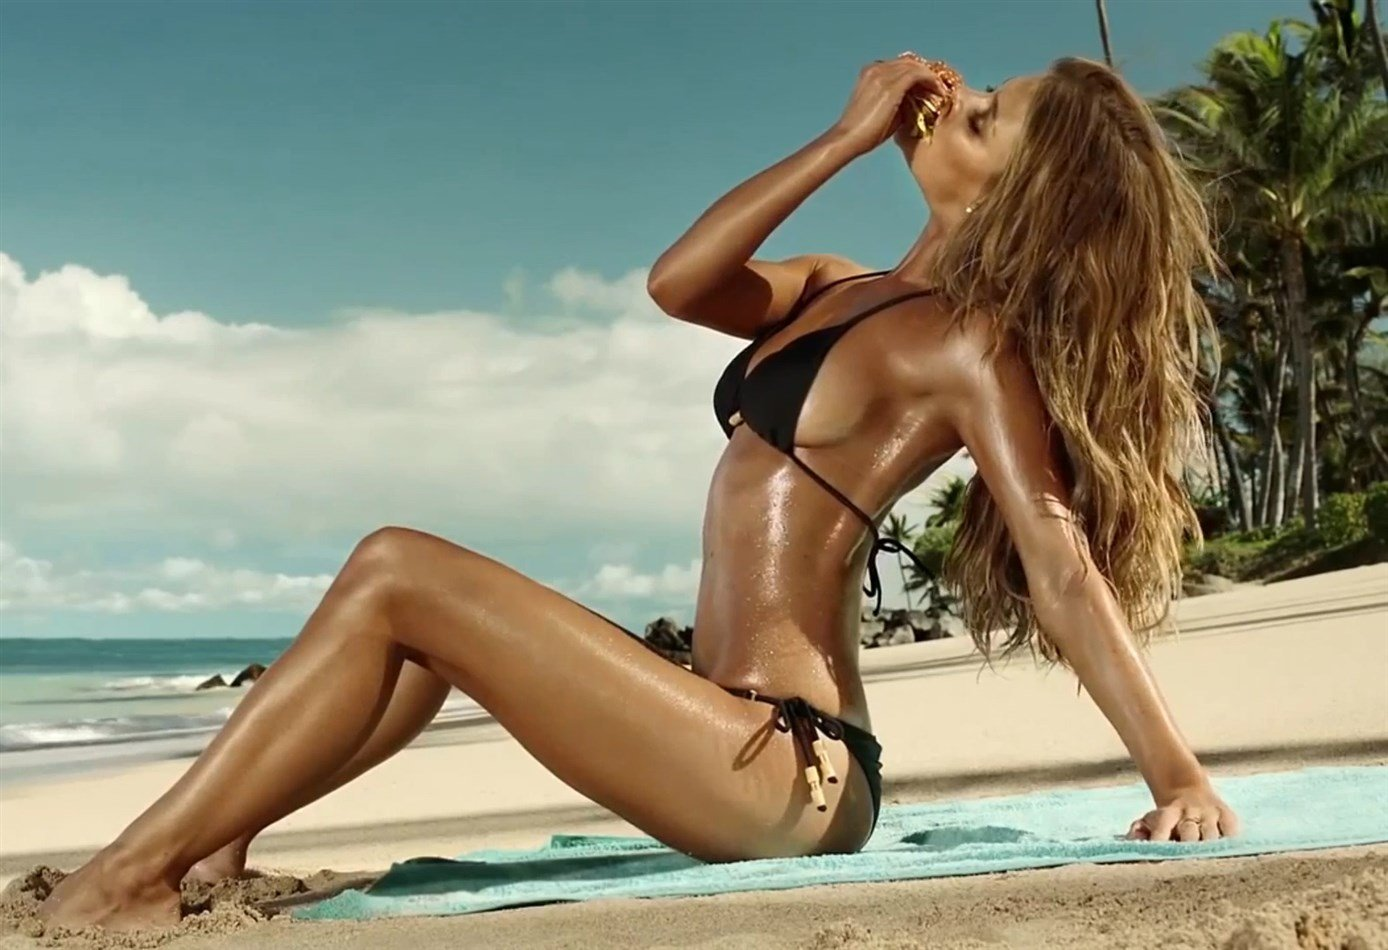 Nina Agdal Spreads Her Legs To Sell A Fish Sandwich